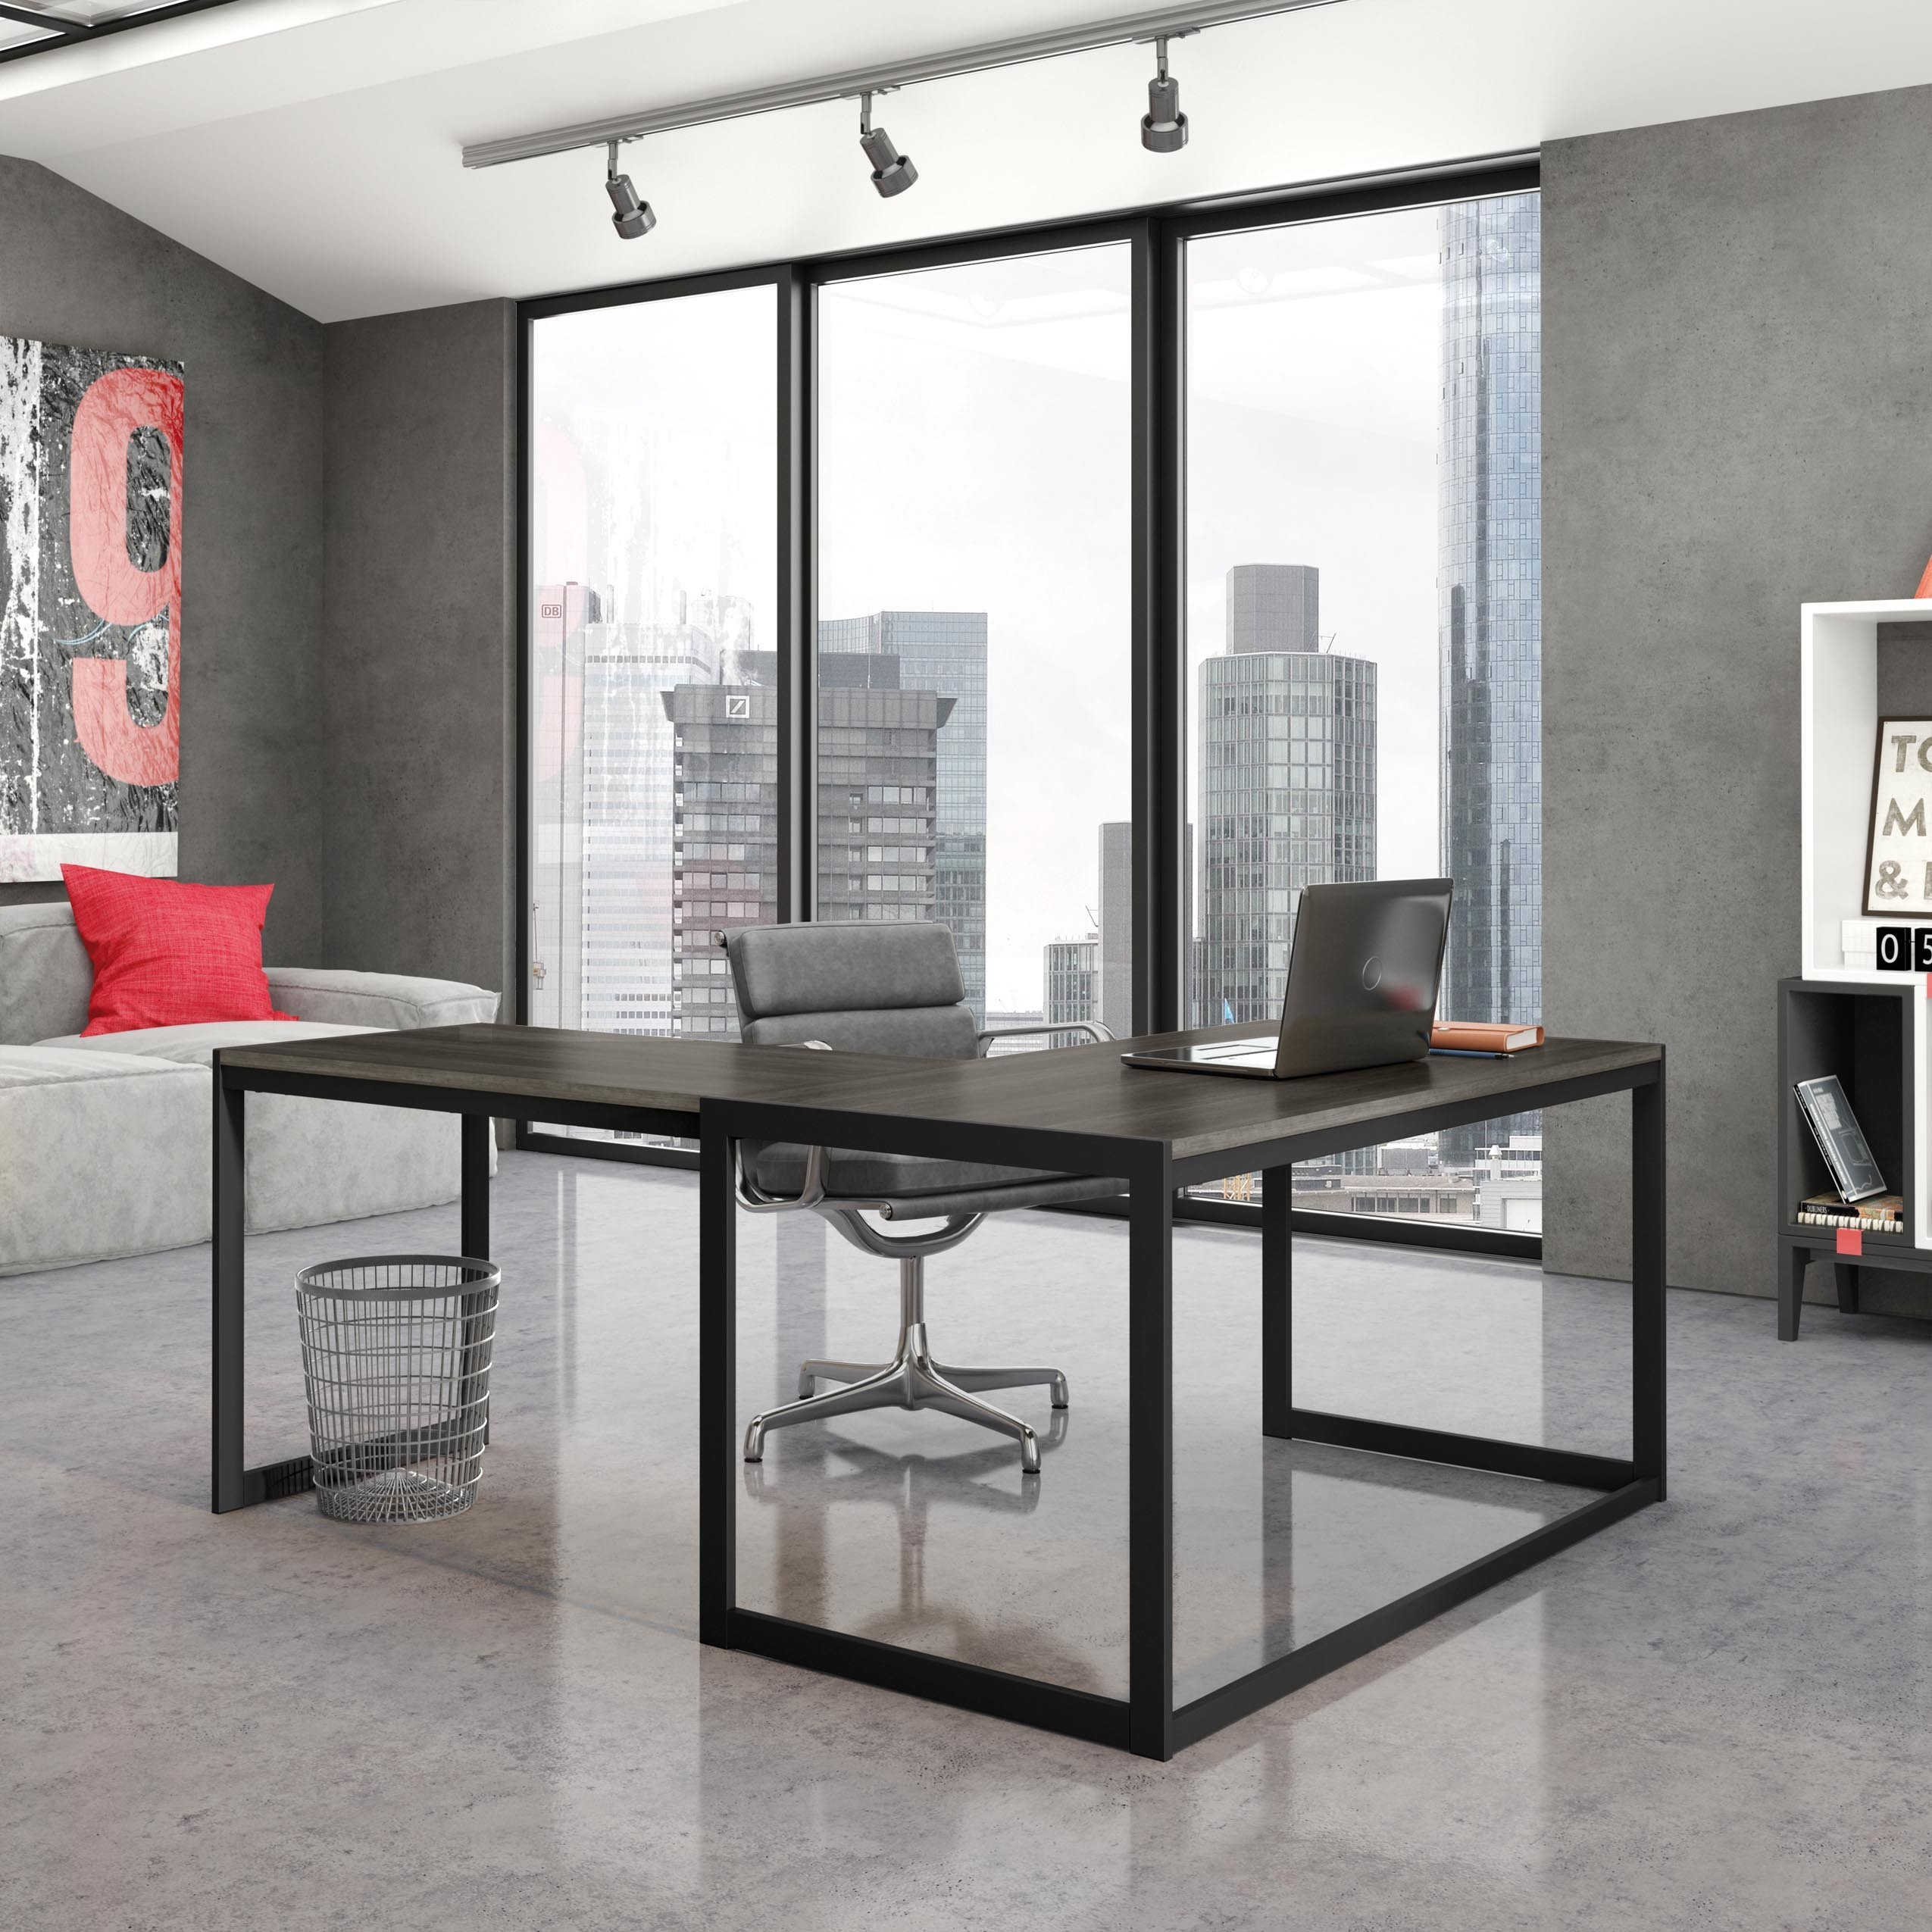 20 Contemporary Office Desk Designs Decorating Ideas